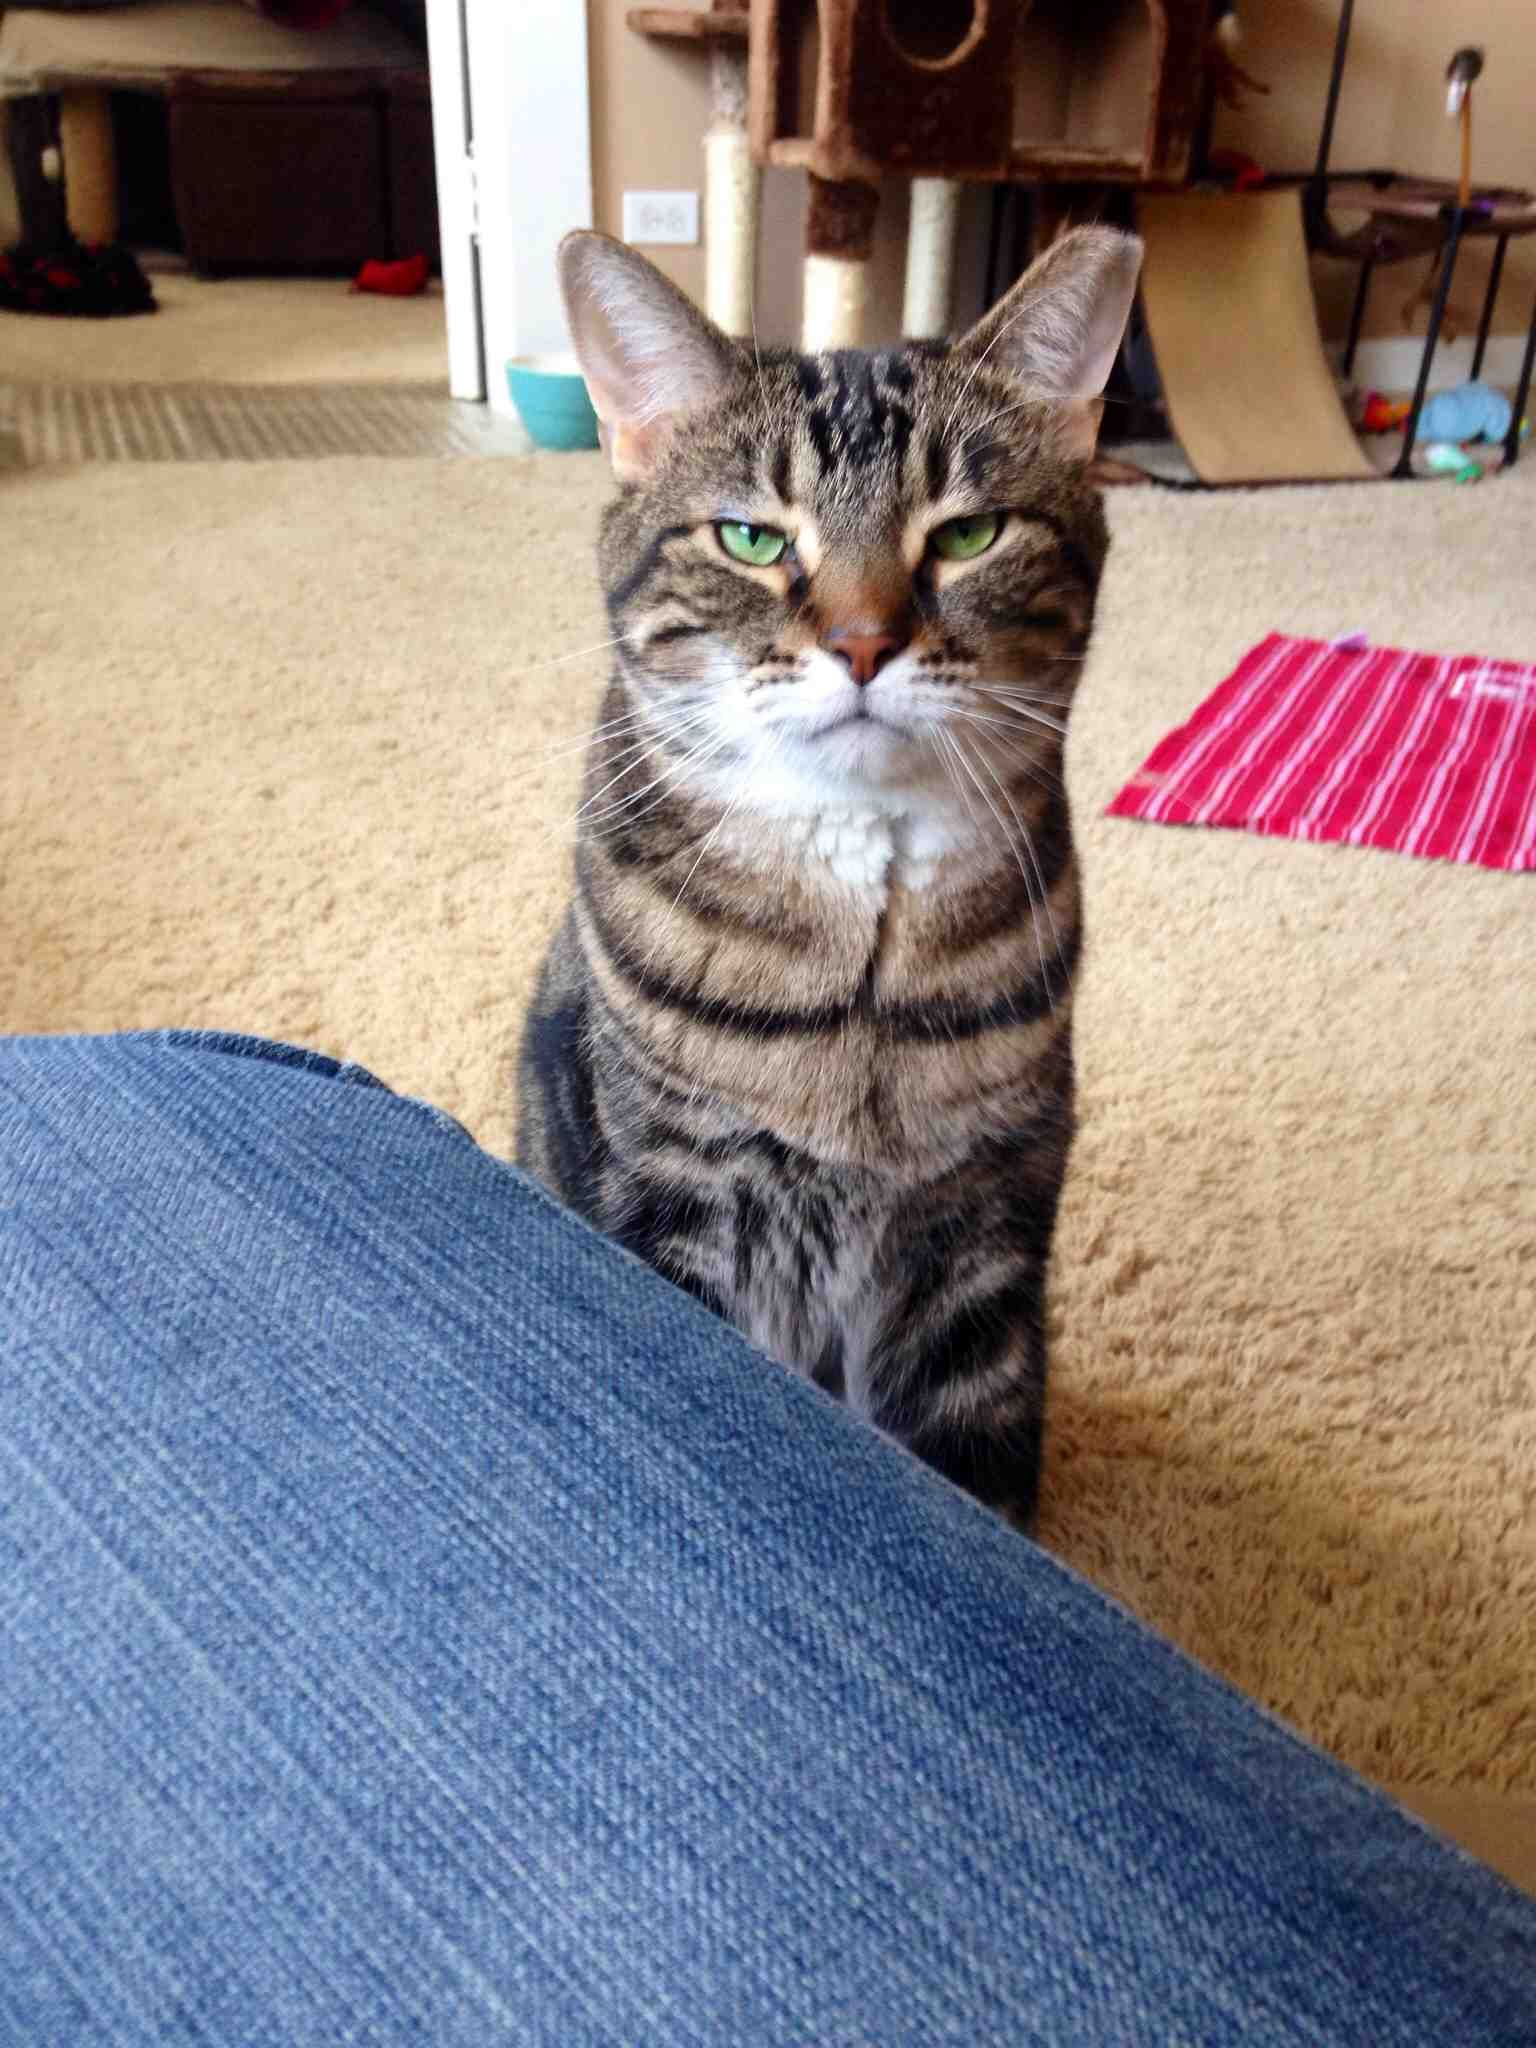 Cats don't beg for food. They sit patiently while you